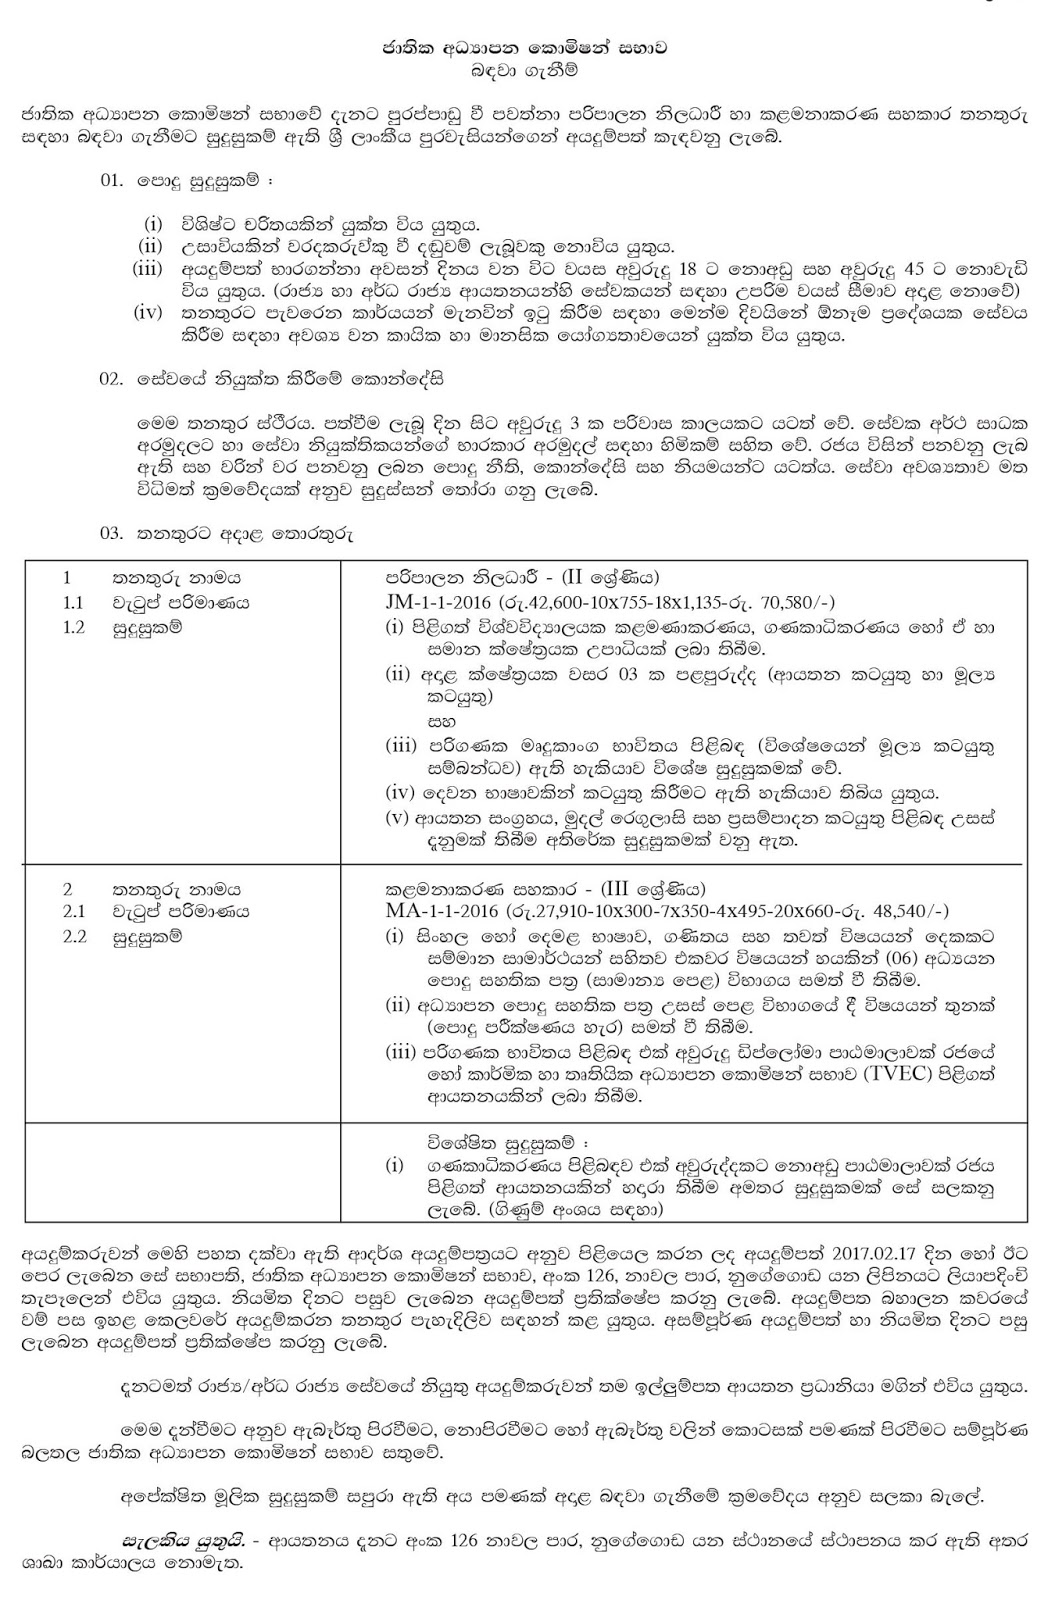 Application form for national education commission vacancy closing application form for national education commission vacancy closing date 2017 02 17 falaconquin